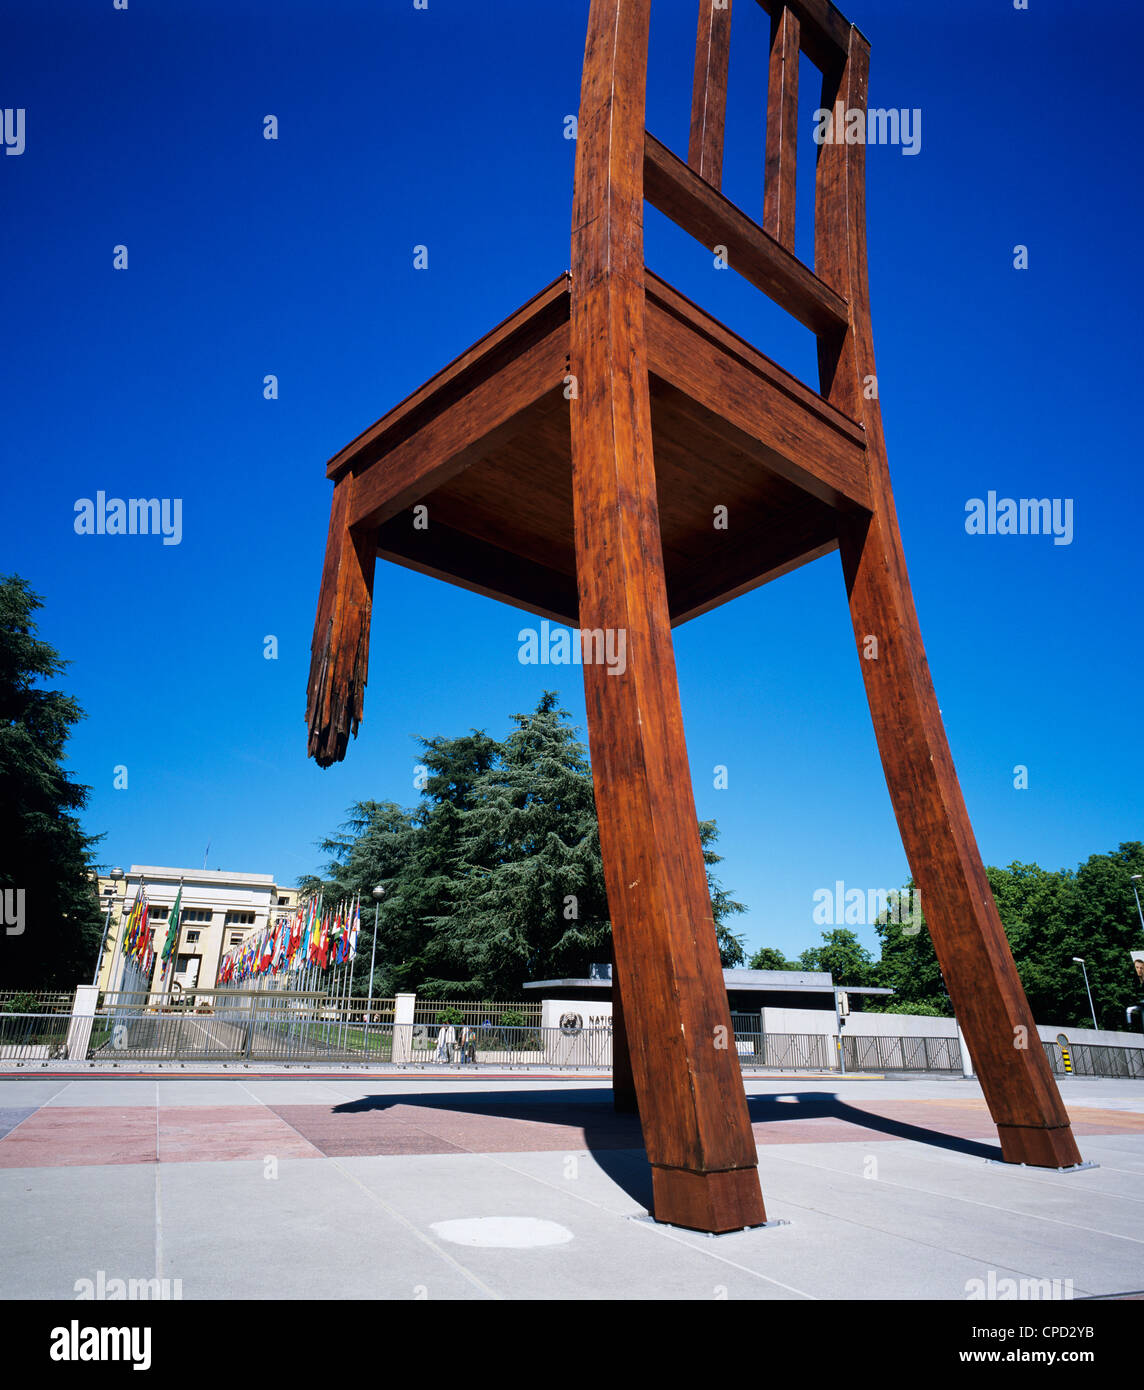 Place des Nations and the Palais des Nations, Geneva, Switzerland, Europe - Stock Image